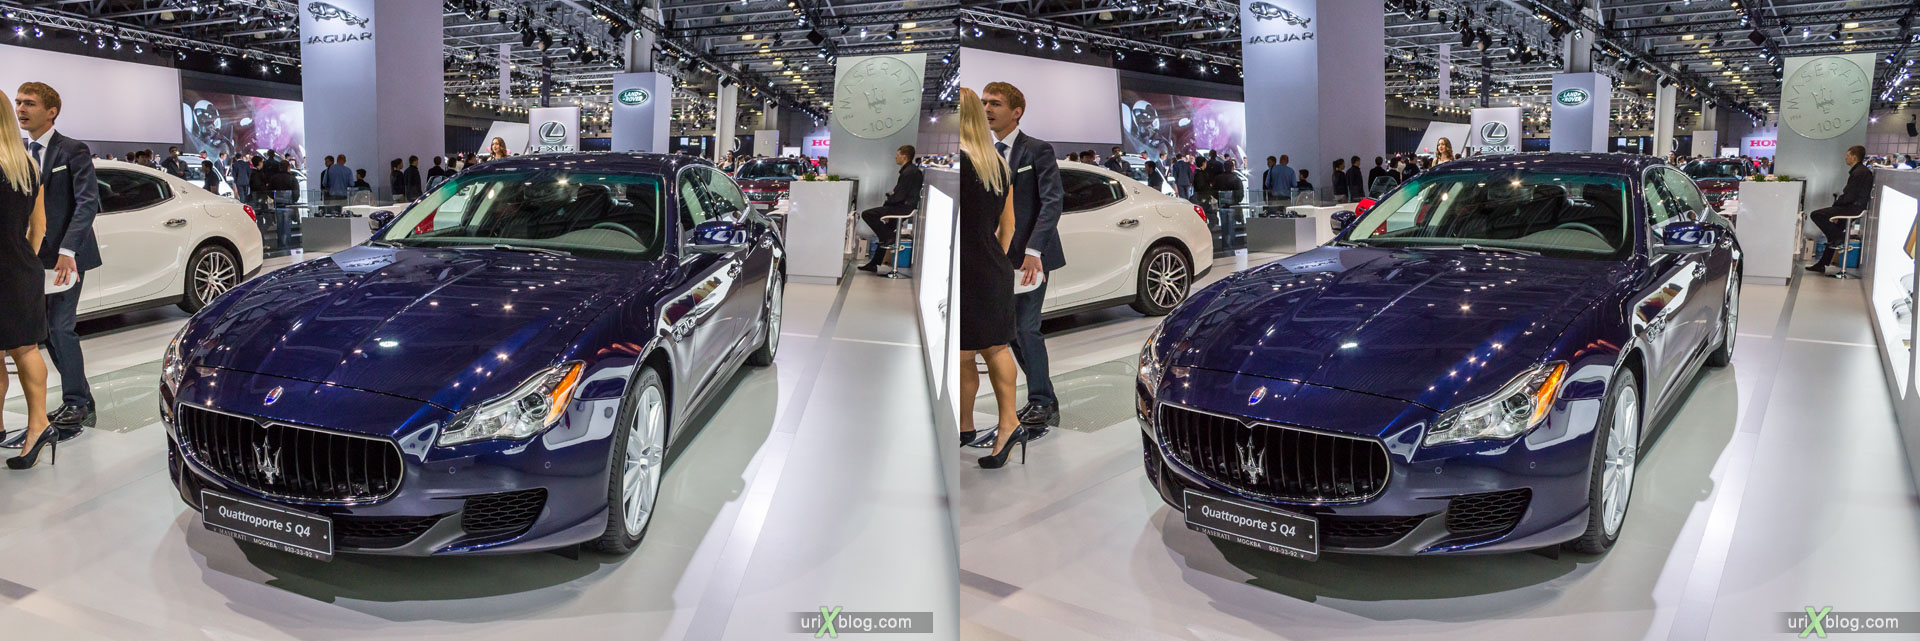 Maserati Quattroporte S Q4, Moscow International Automobile Salon 2014, MIAS 2014, girls, models, Crocus Expo, Moscow, Russia, 3D, stereo pair, cross-eyed, crossview, cross view stereo pair, stereoscopic, 2014